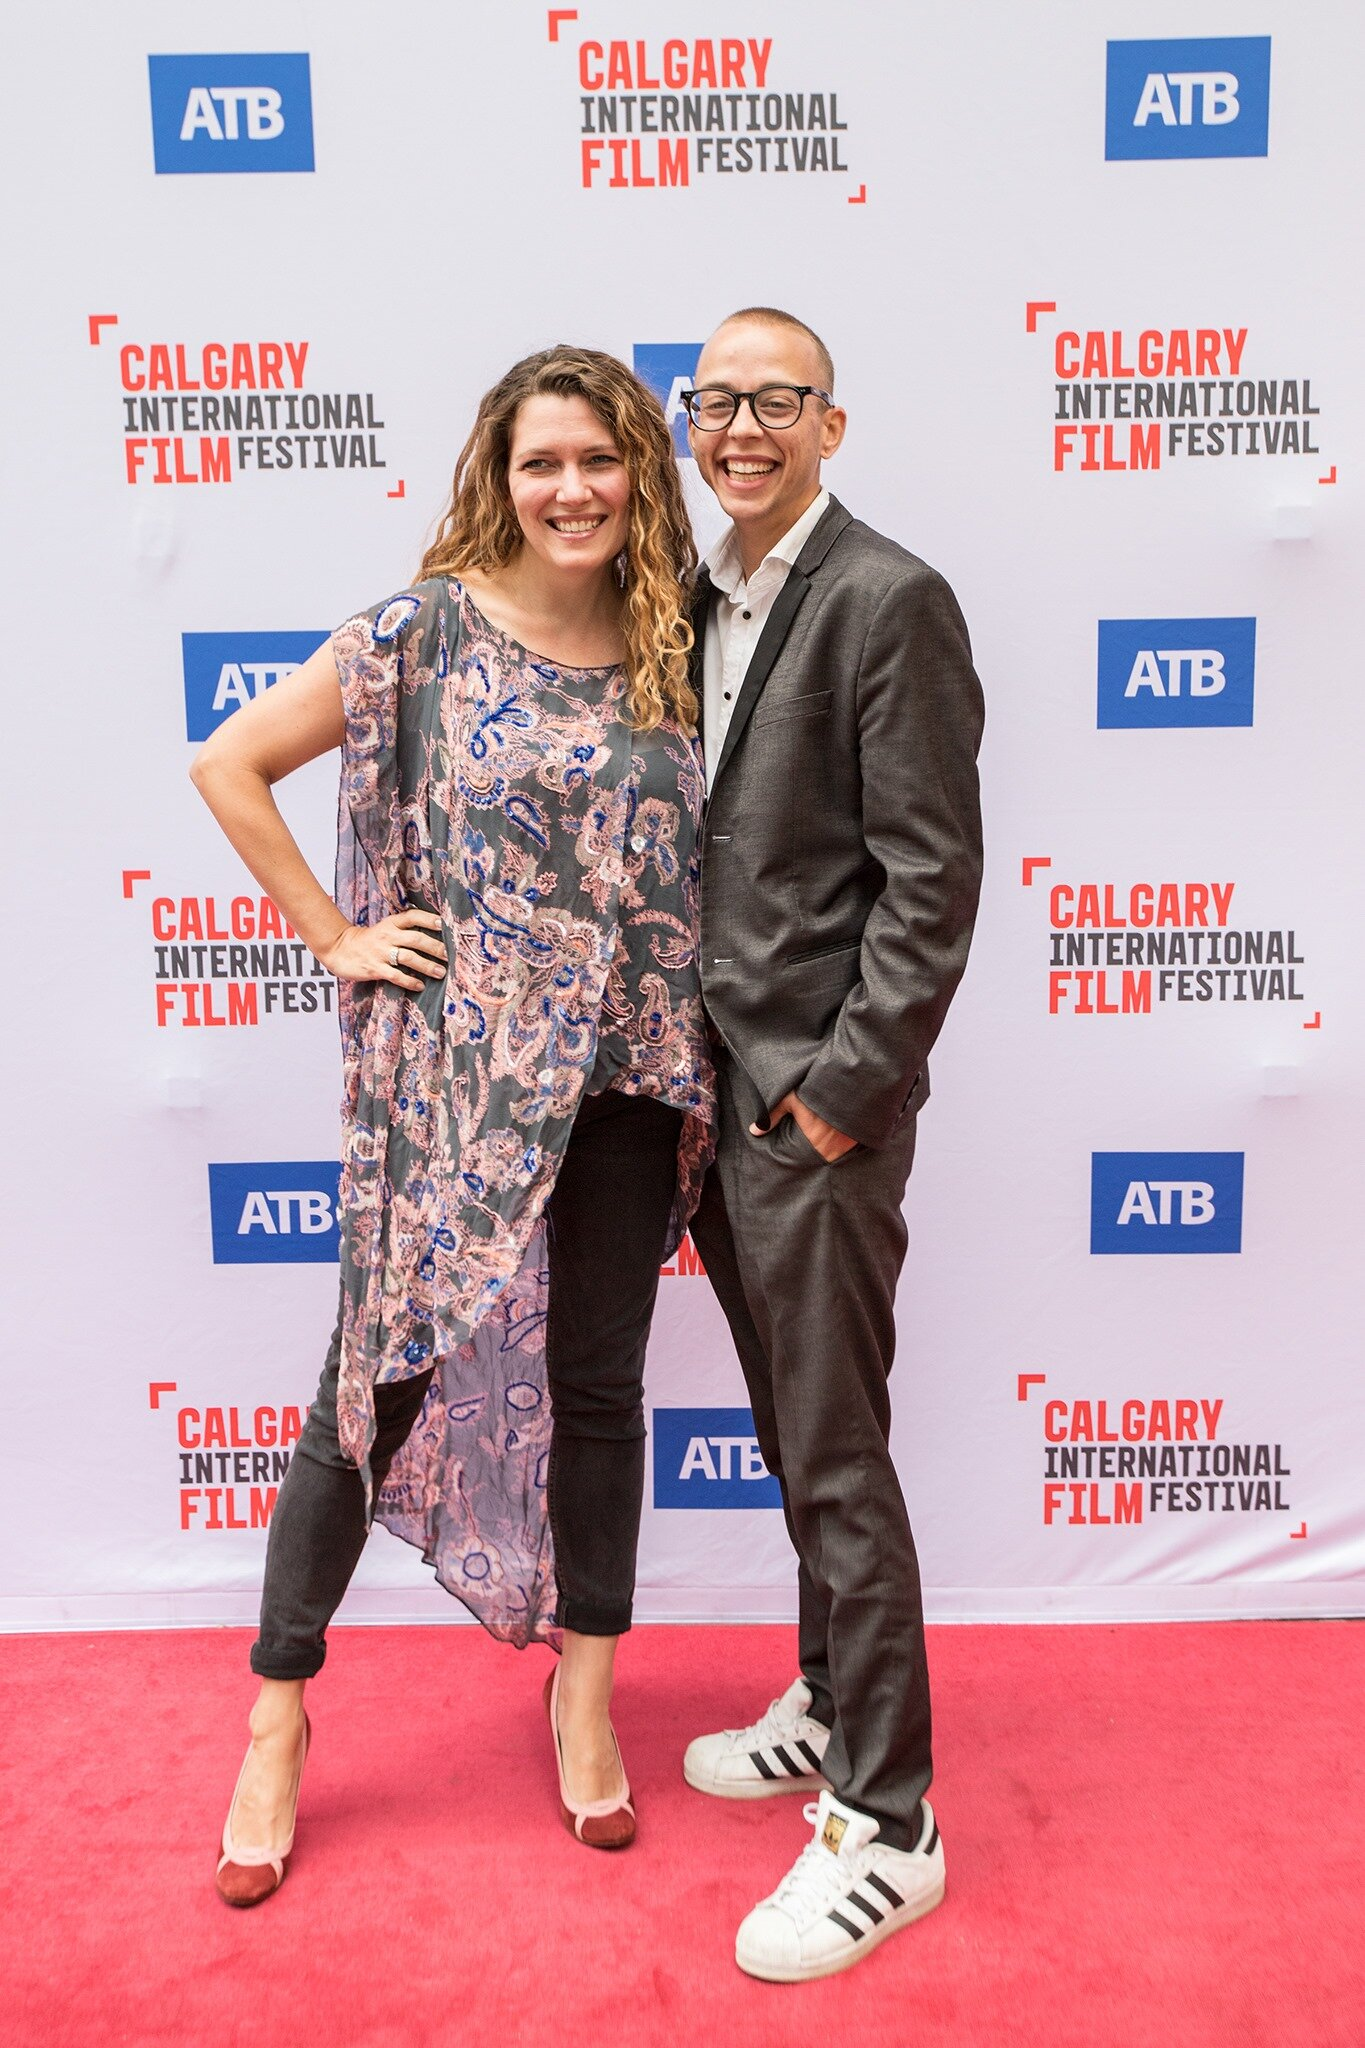 Nick North and Katherine North at Calgary International Film Festival Premier Just Another Beautiful Family